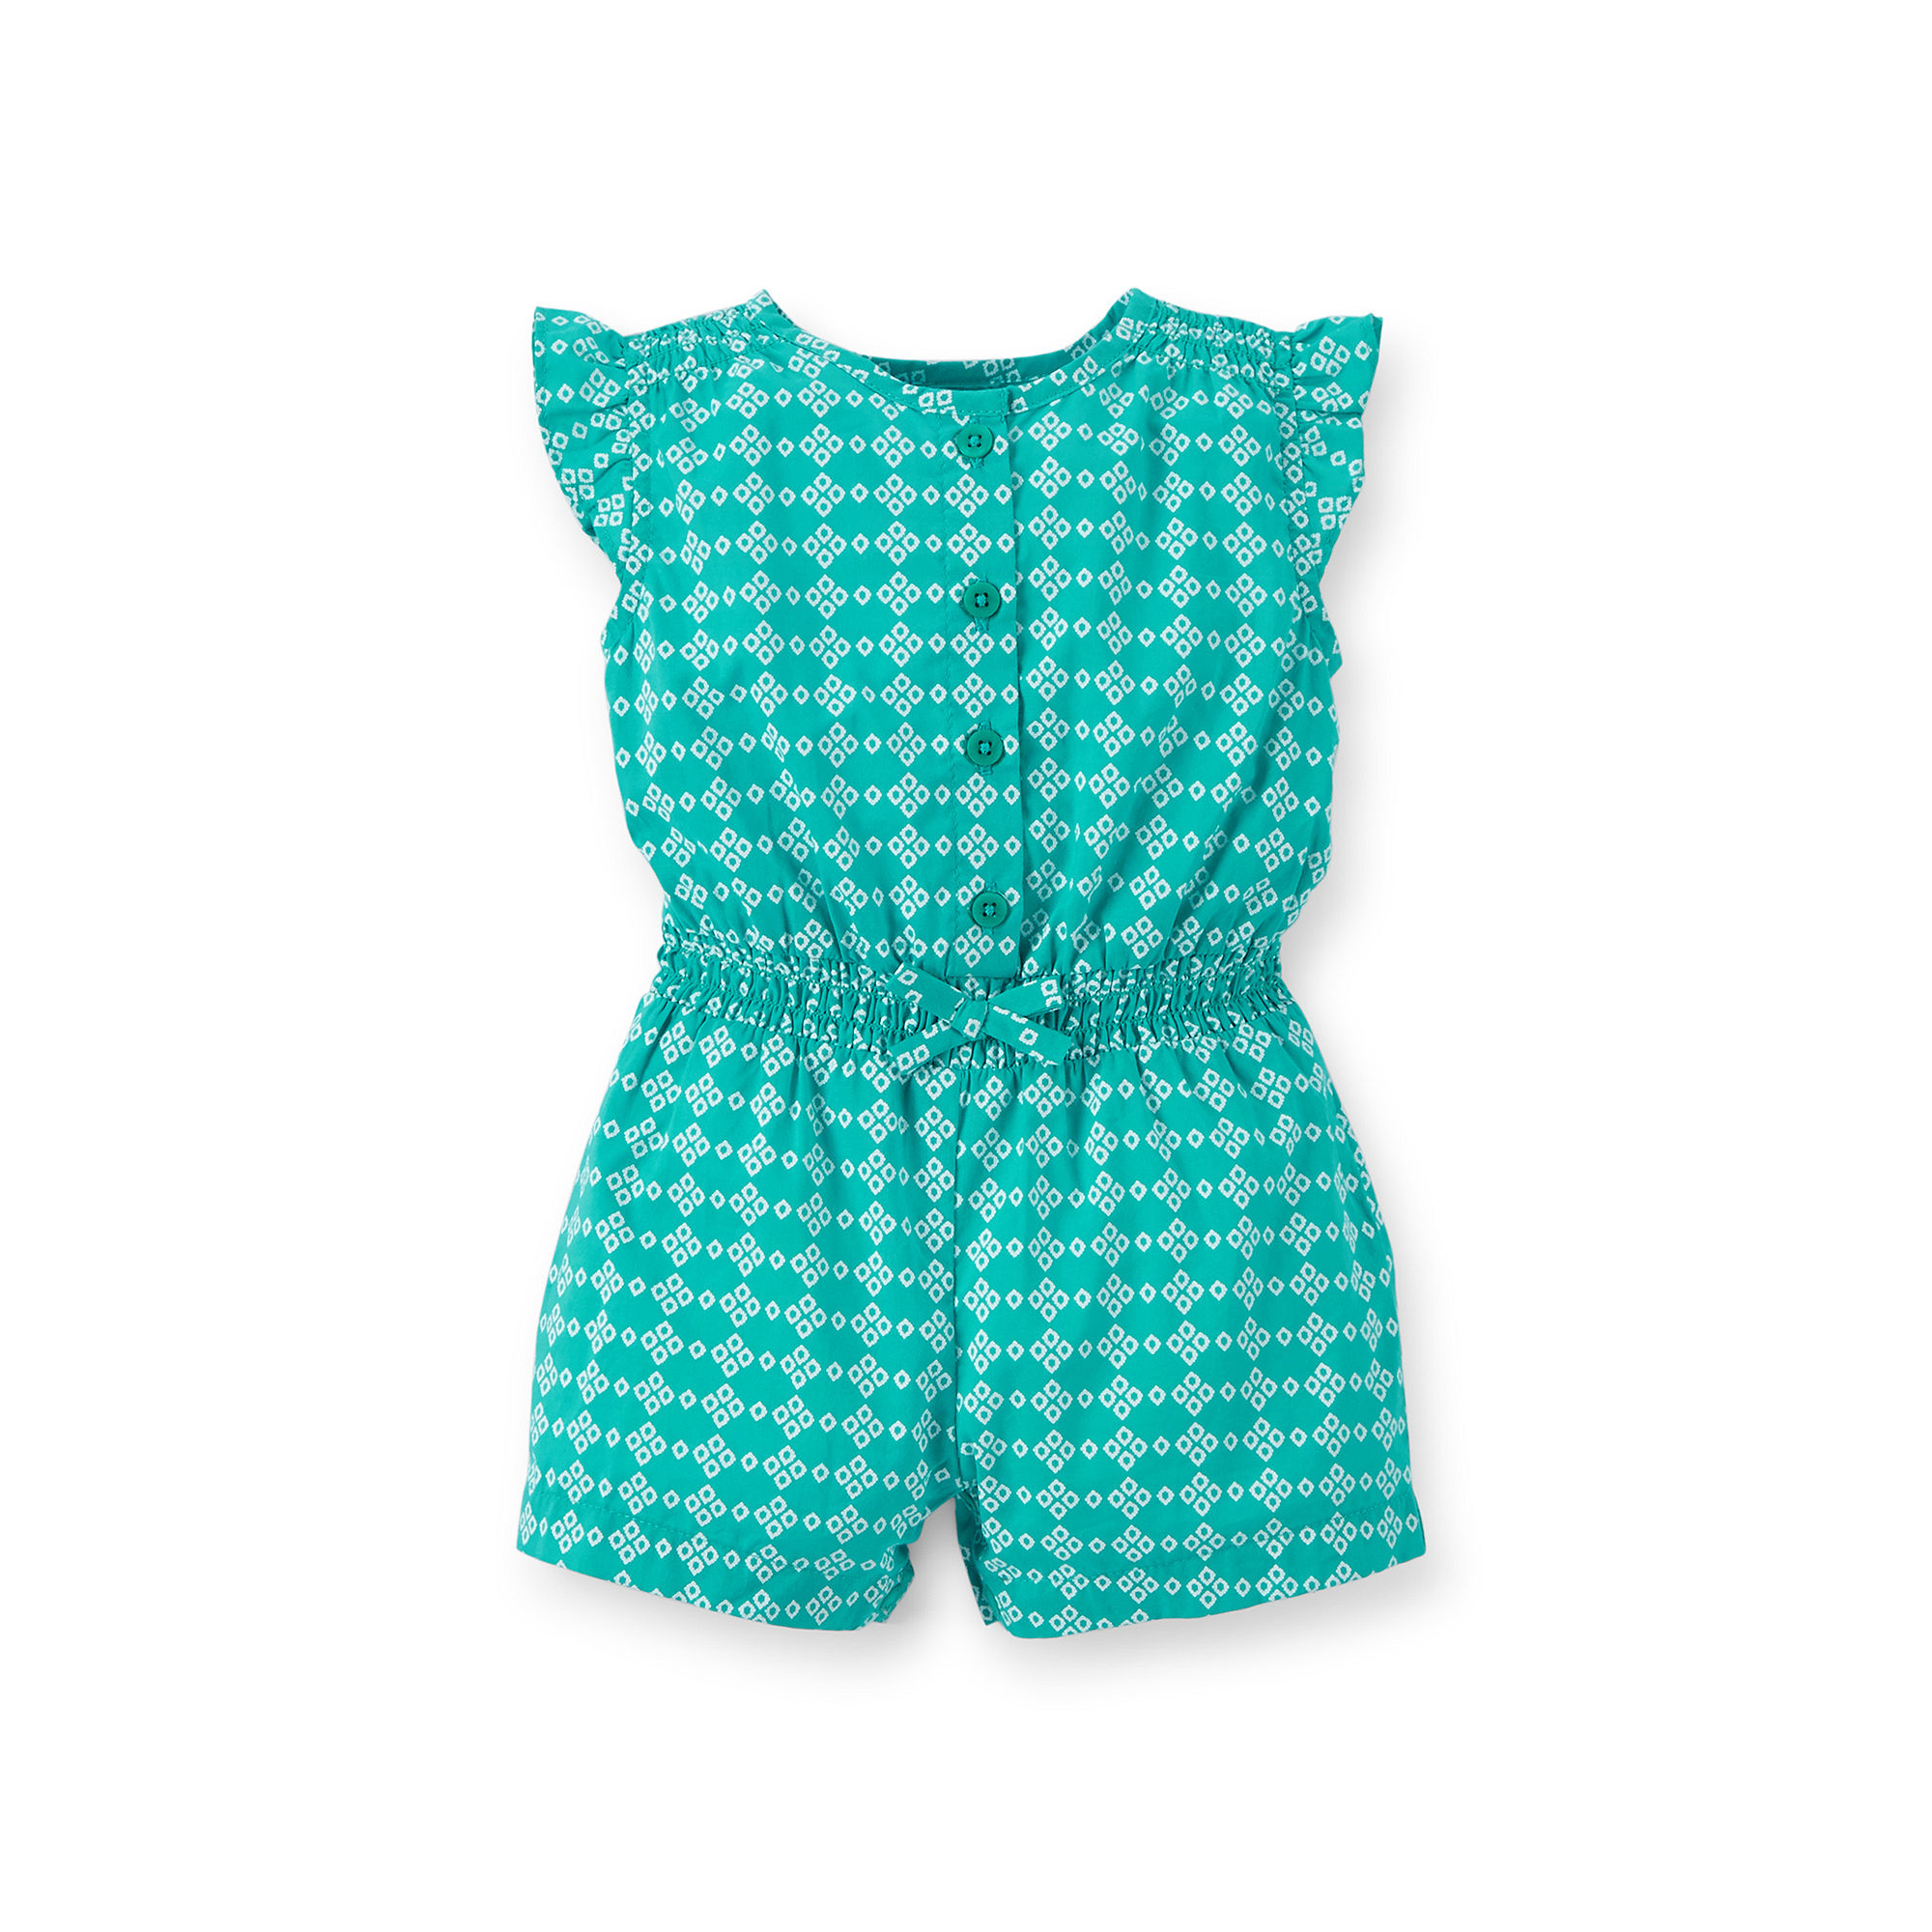 242adef70cd UPC 888510422051 product image for Carters Print Cotton Romper - Baby Girls  newborn-24m ...